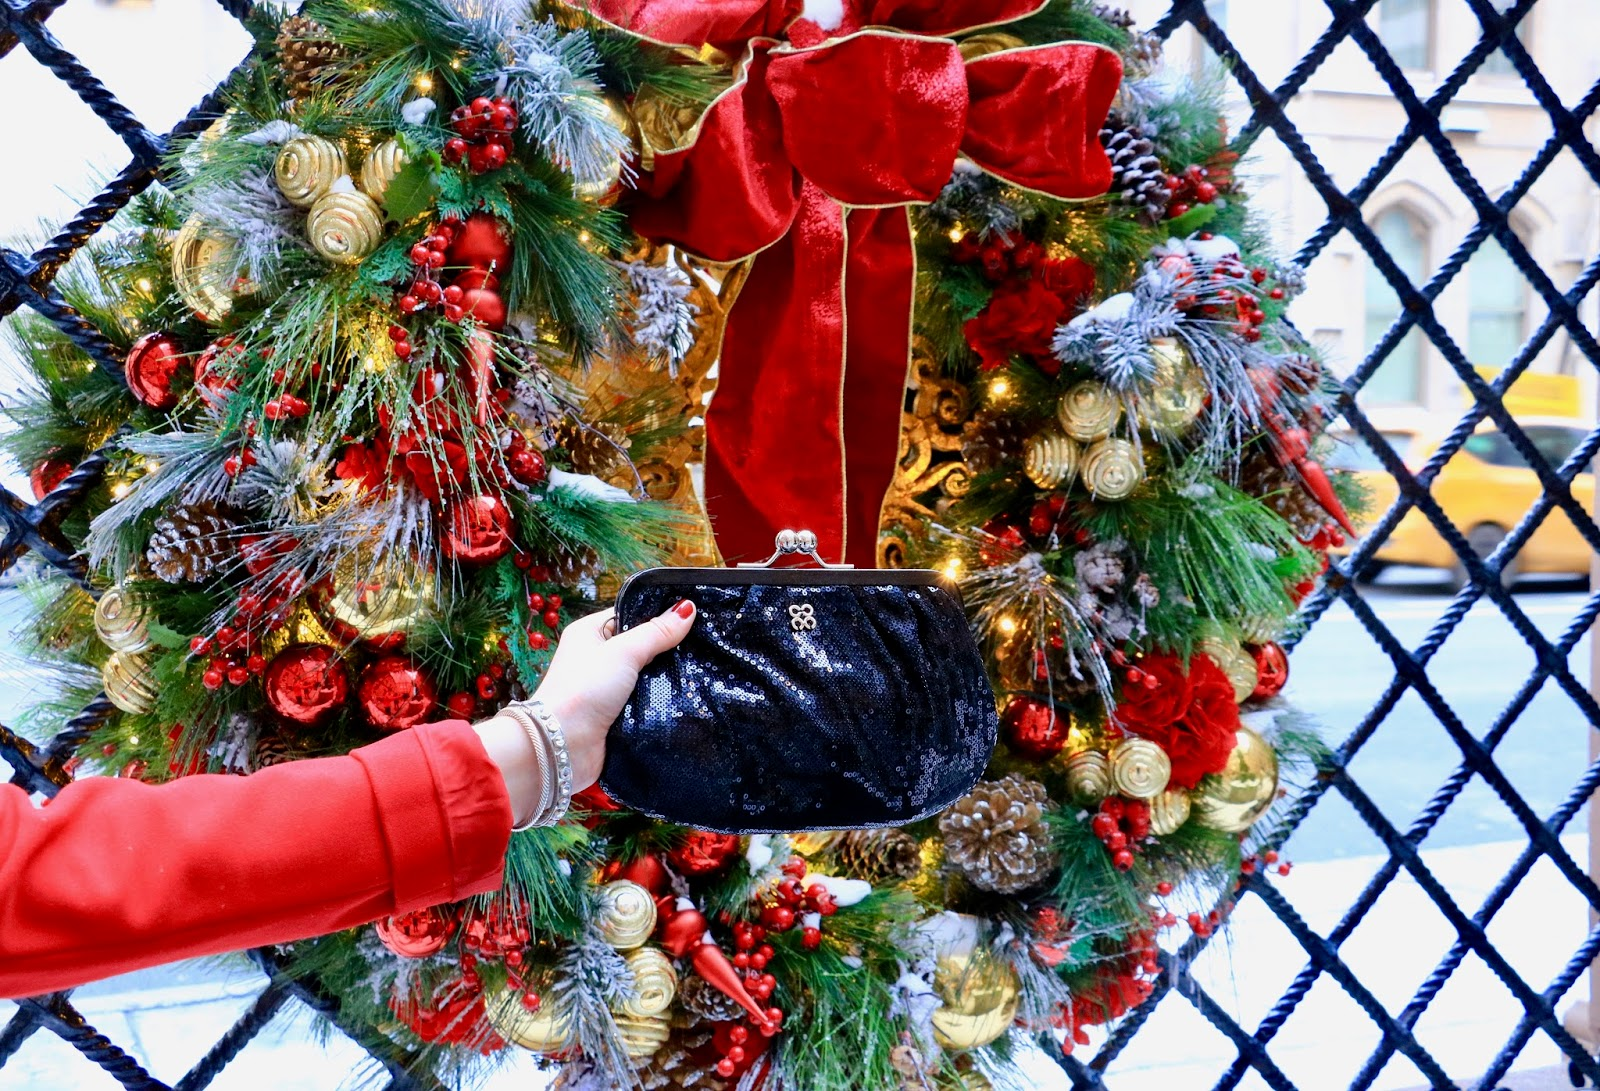 Nyc fashion blogger Kathleen Harper with a sparkly black clutch by Coach